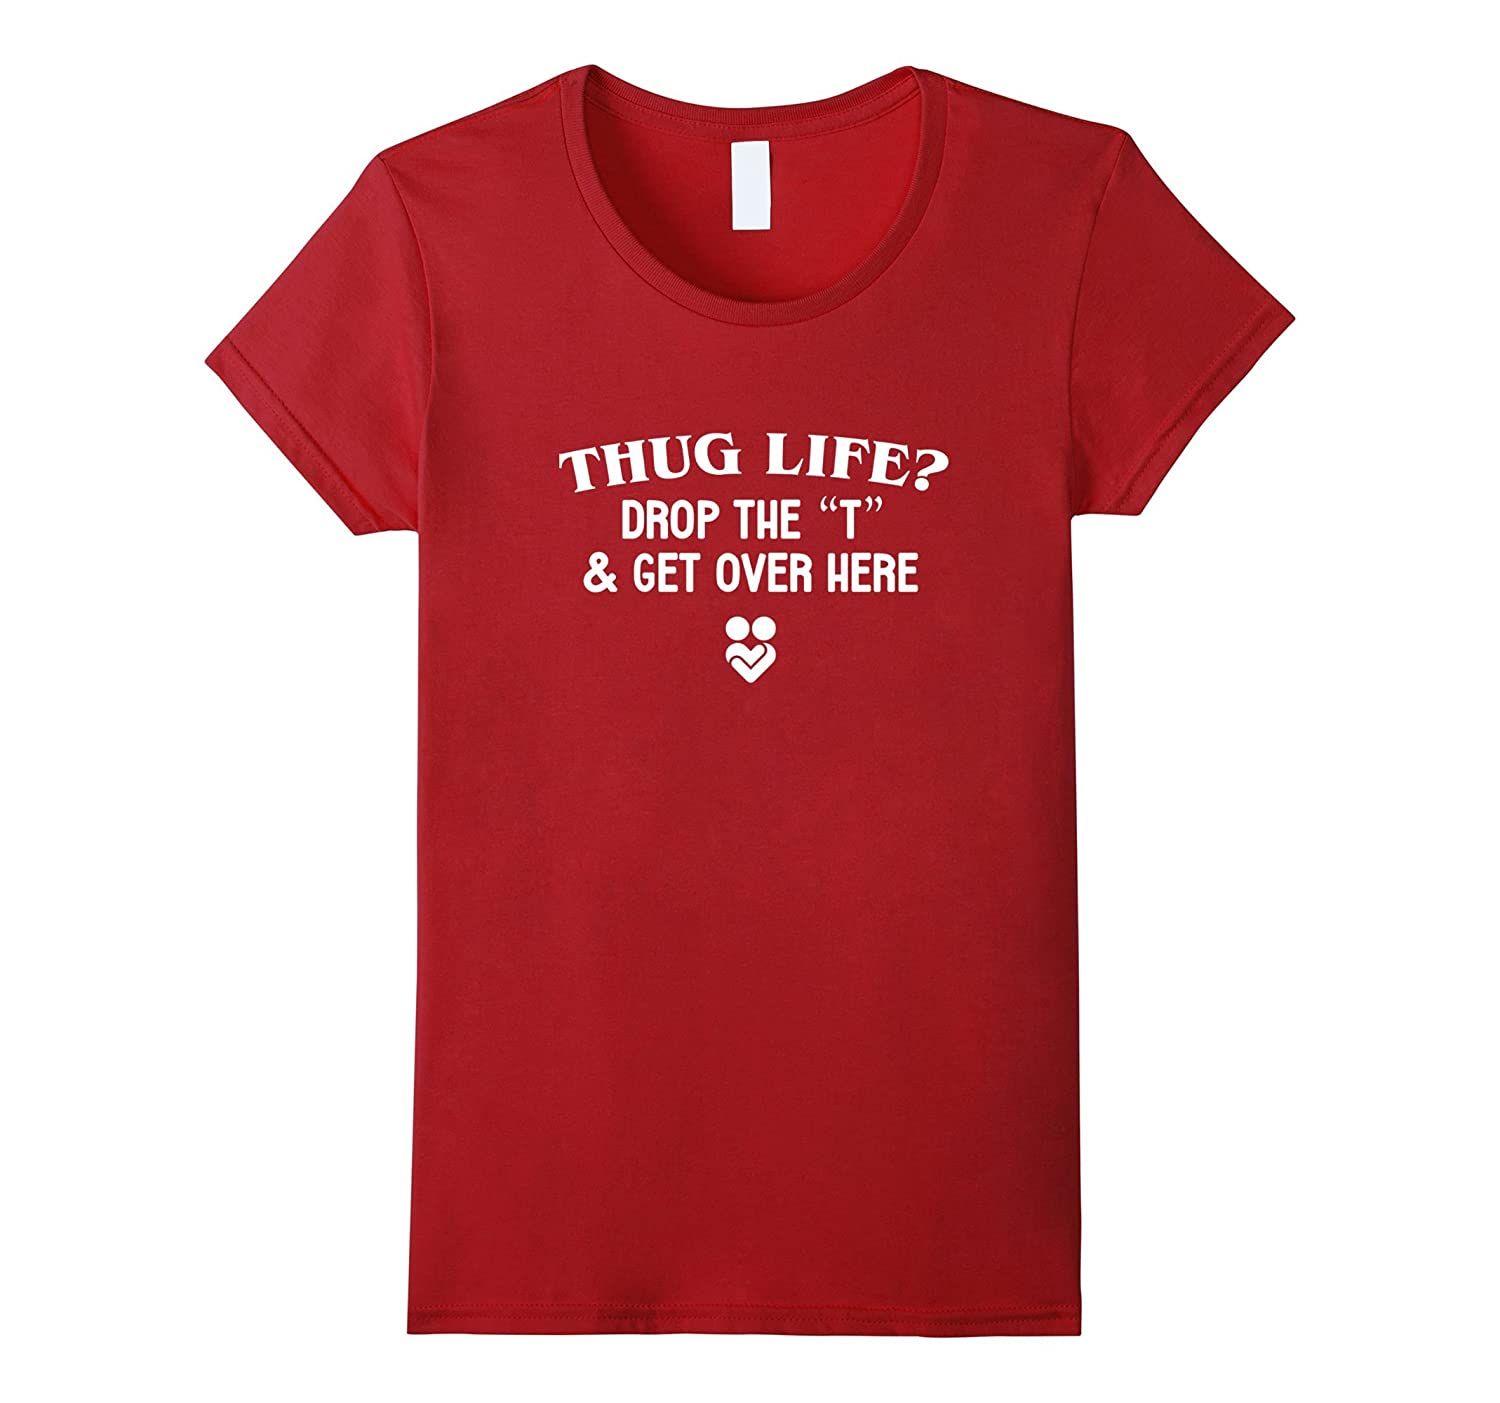 (Hug Life) Drop the T & Get Over Here Funny Shirt For Thugs